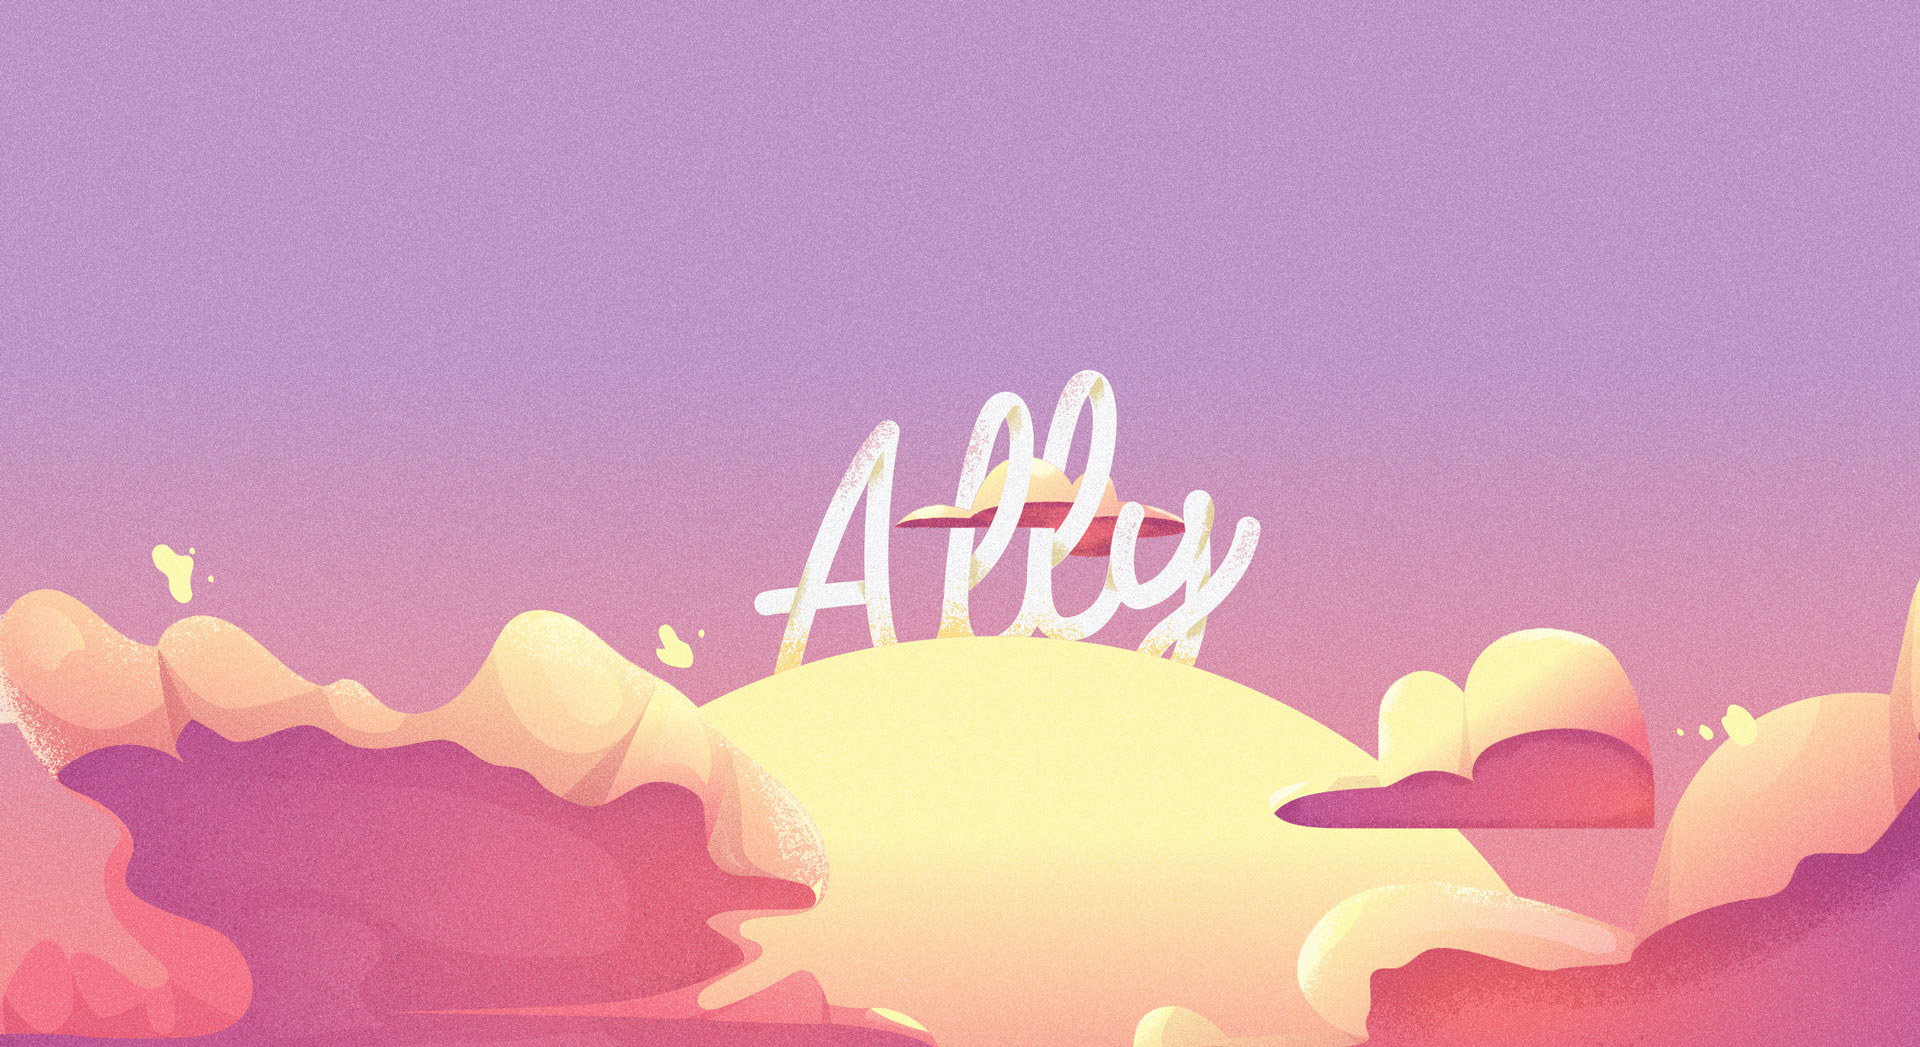 Ally header. Typography on clouds and sunset.